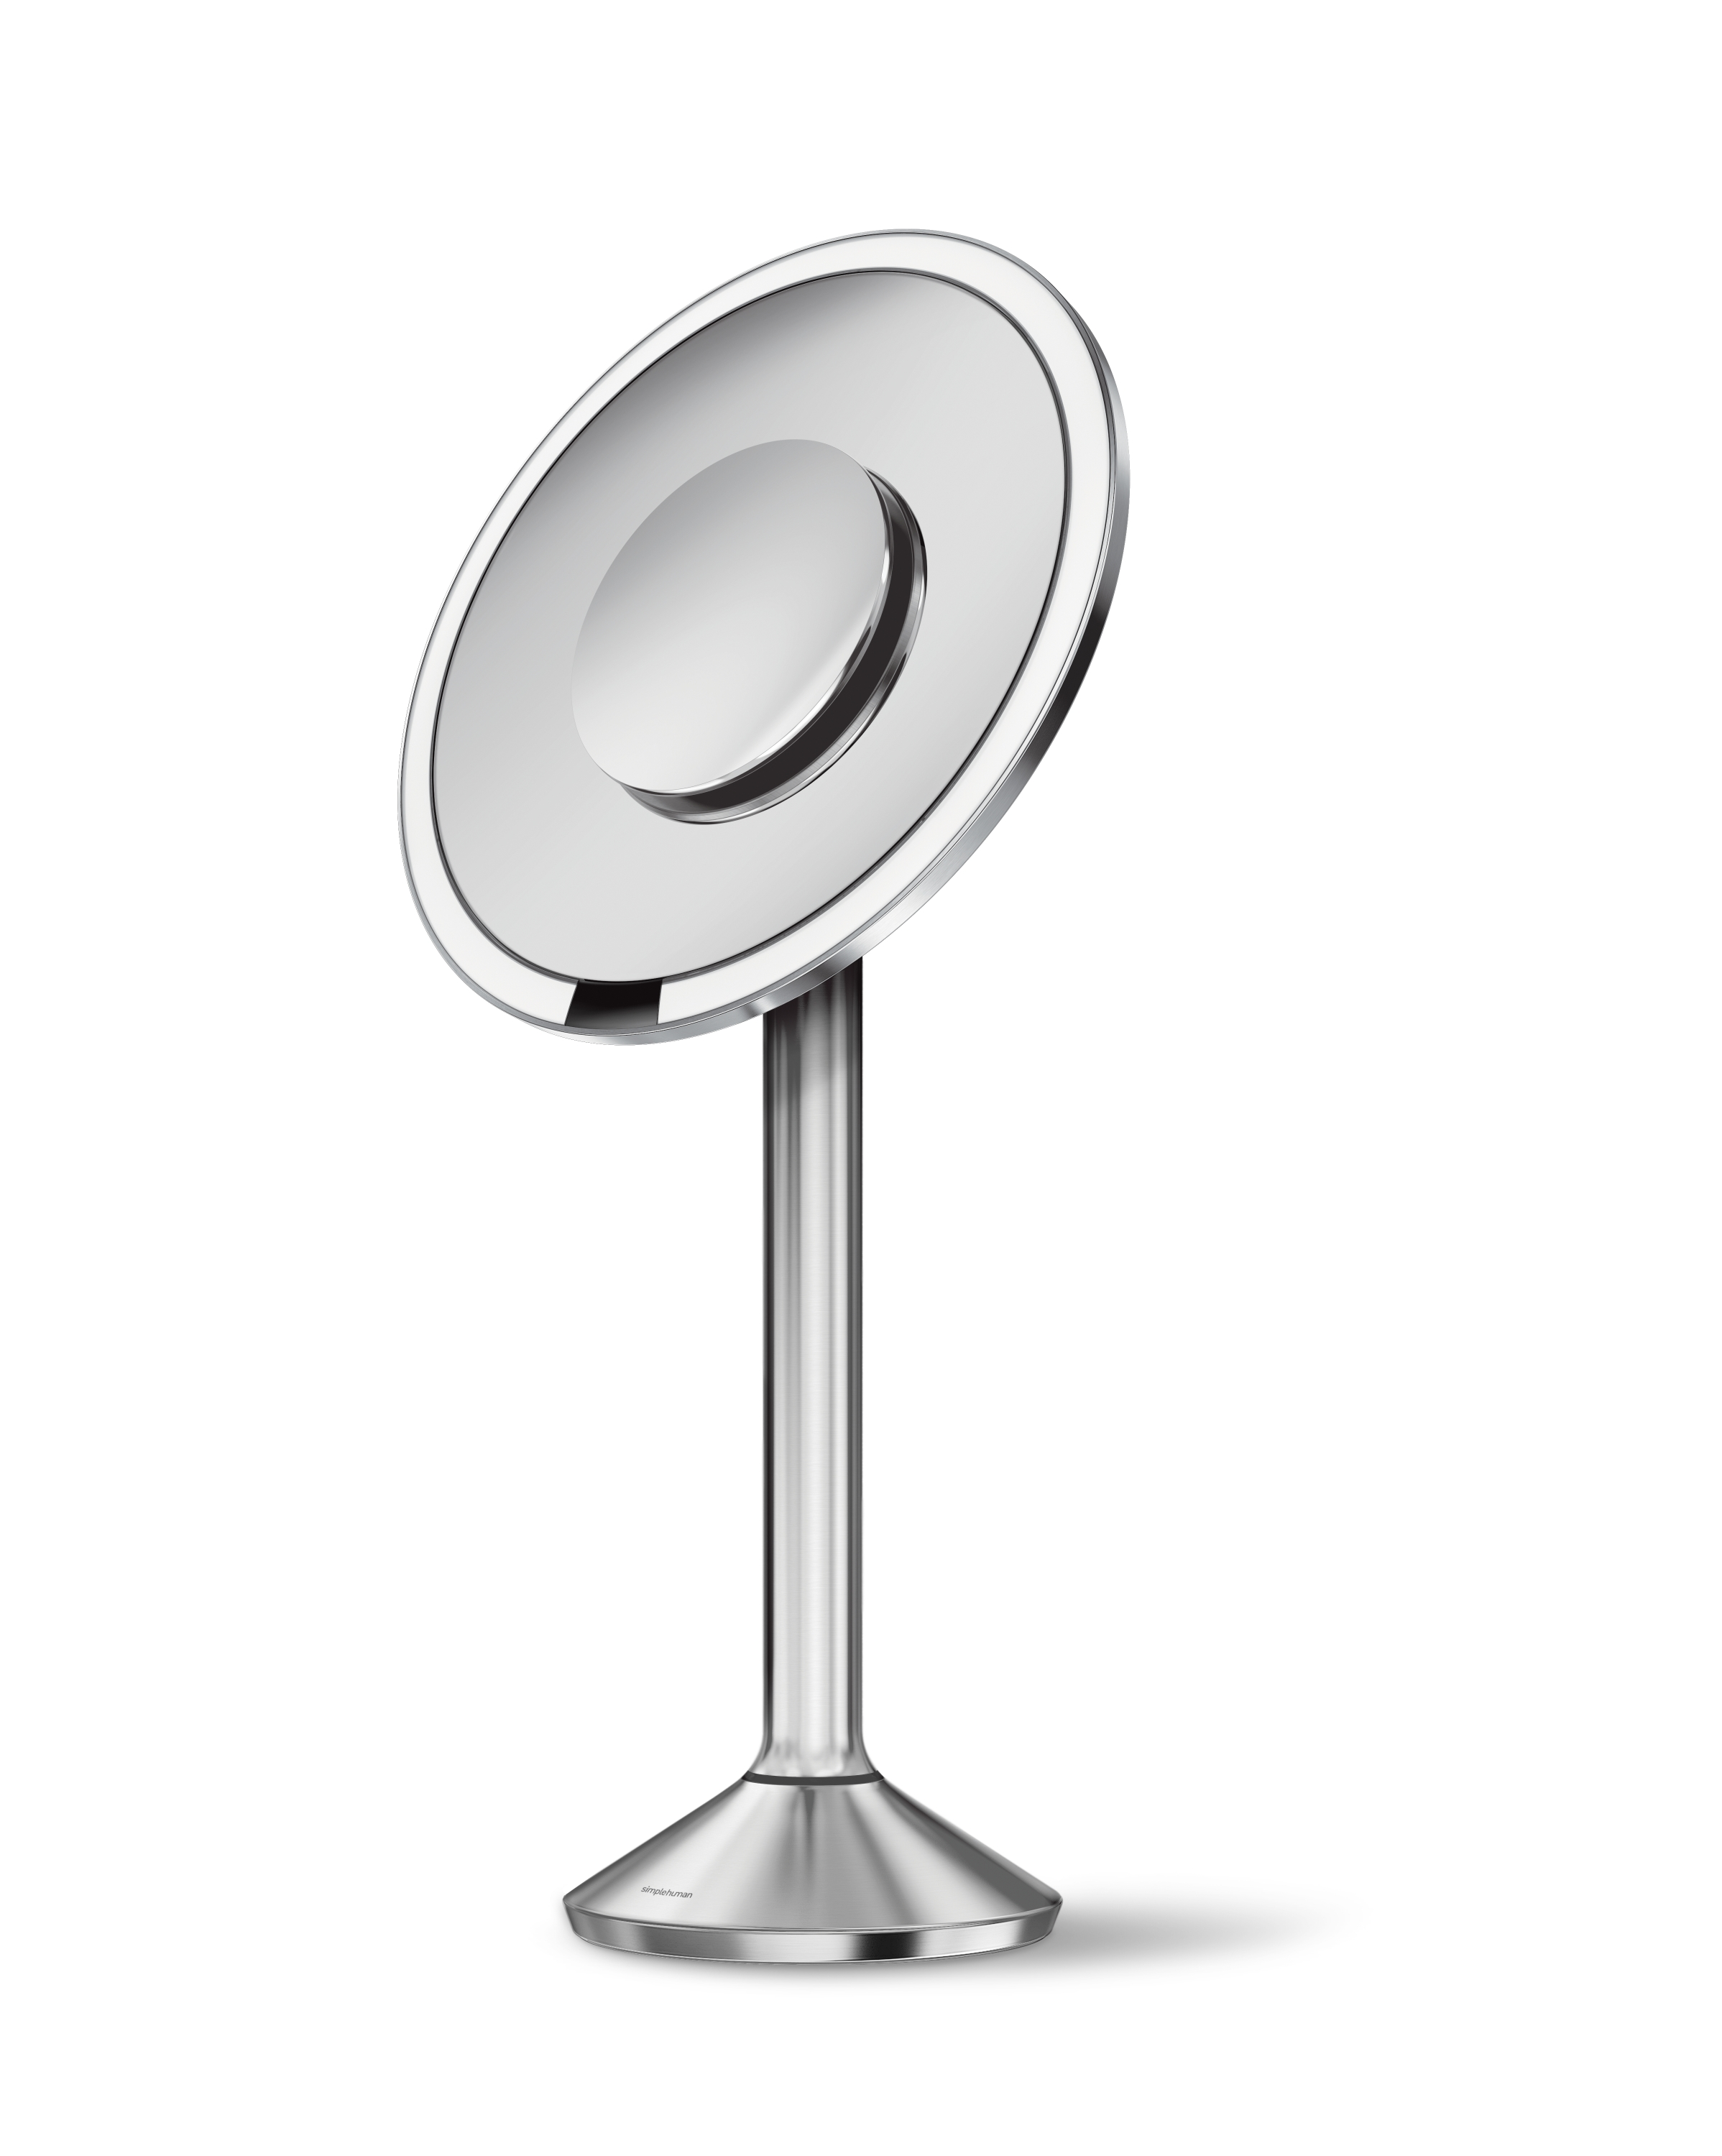 This Simplehuman Mirror Gets A Lot More Interesting With